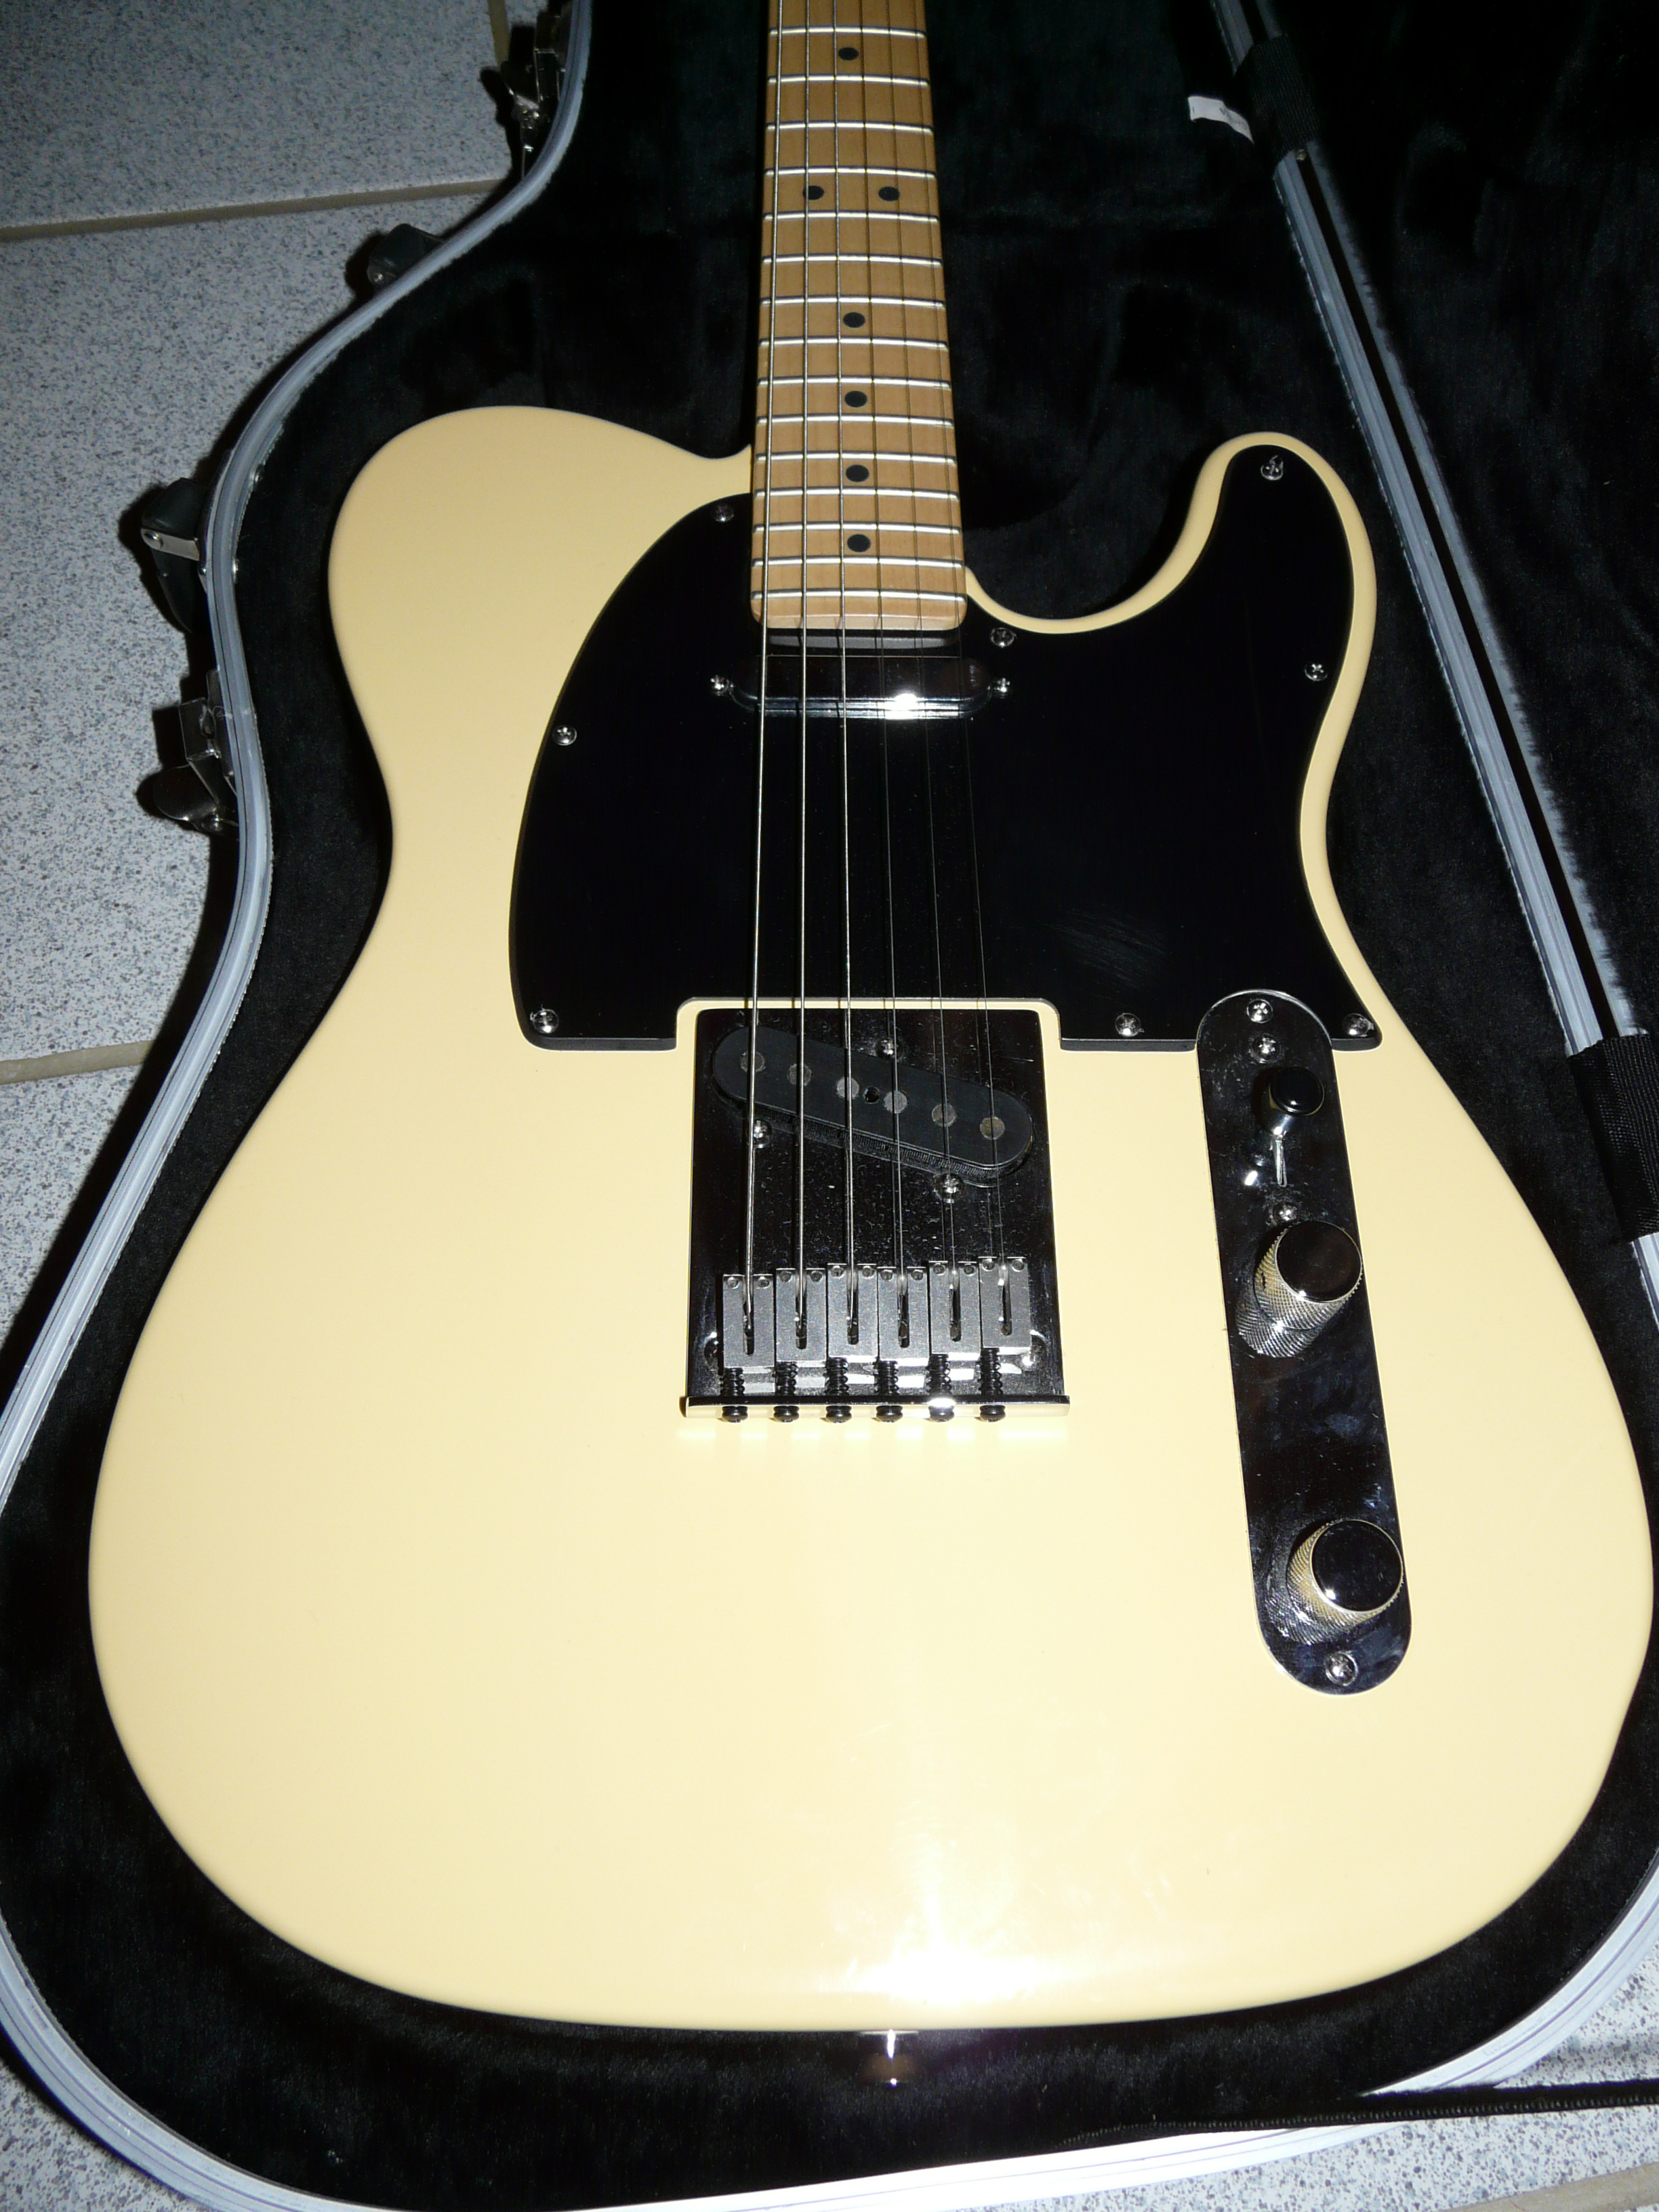 American standard telecaster vintage white necessary words